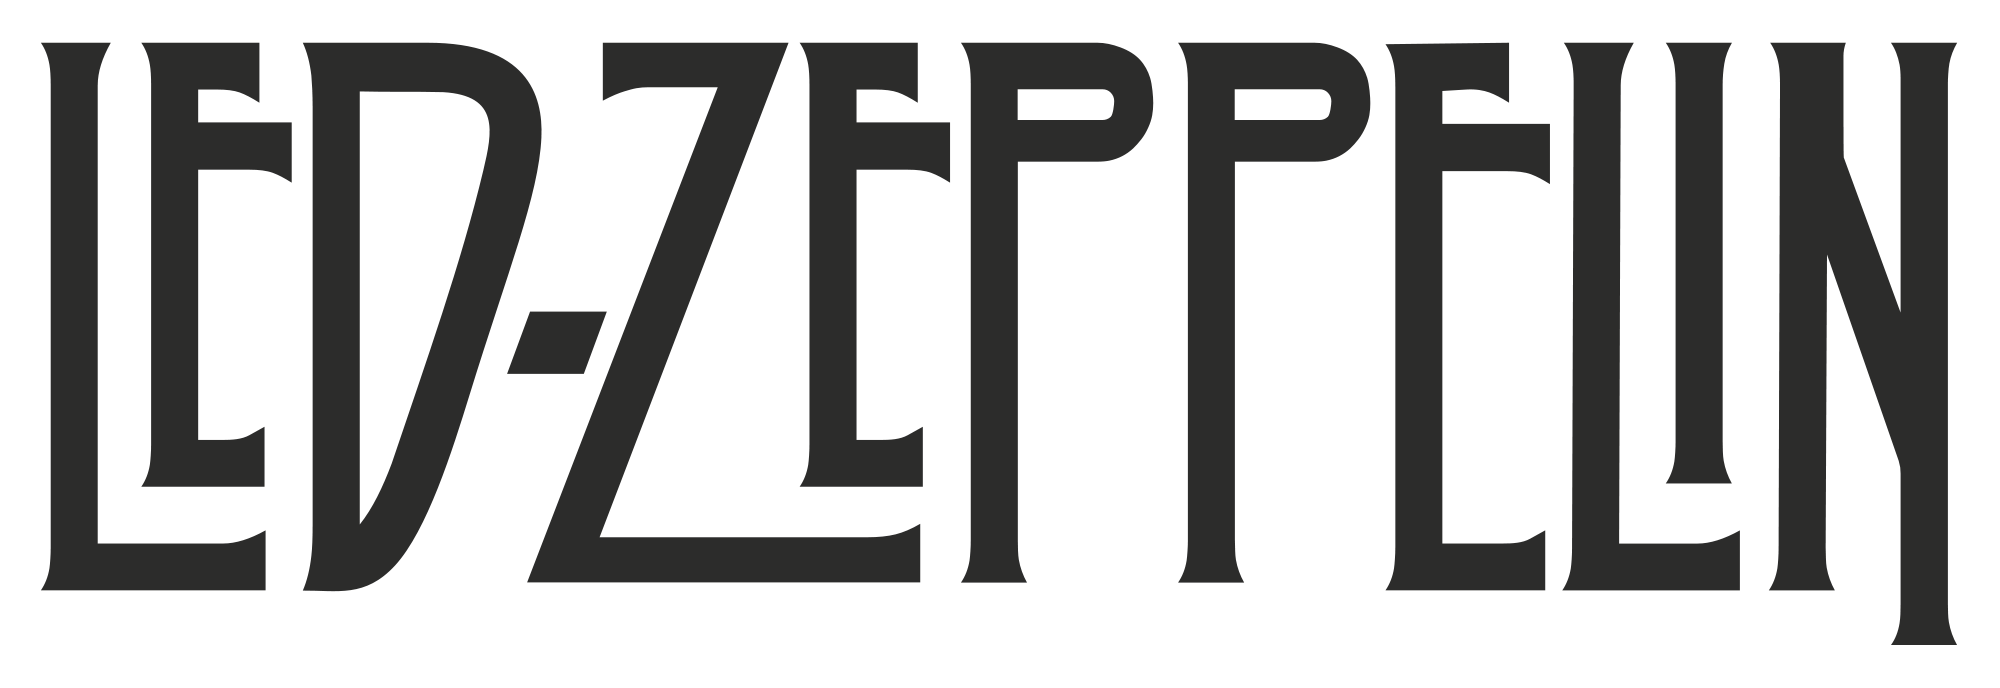 Led Zeppelin Logo, Led Zeppelin Symbol Meaning, History and Evolution